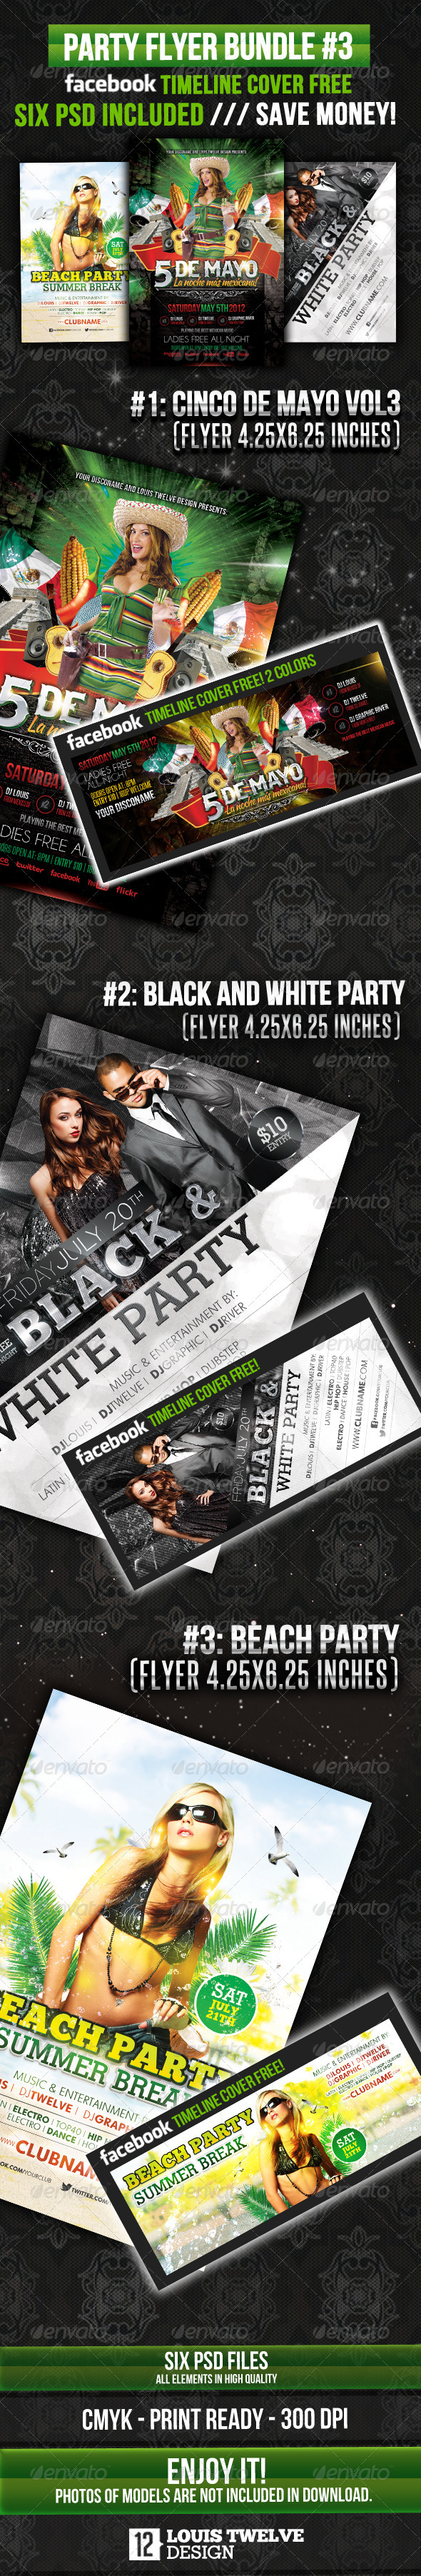 Party Flyer Bundle 03 + Facebook Cover - Clubs & Parties Events